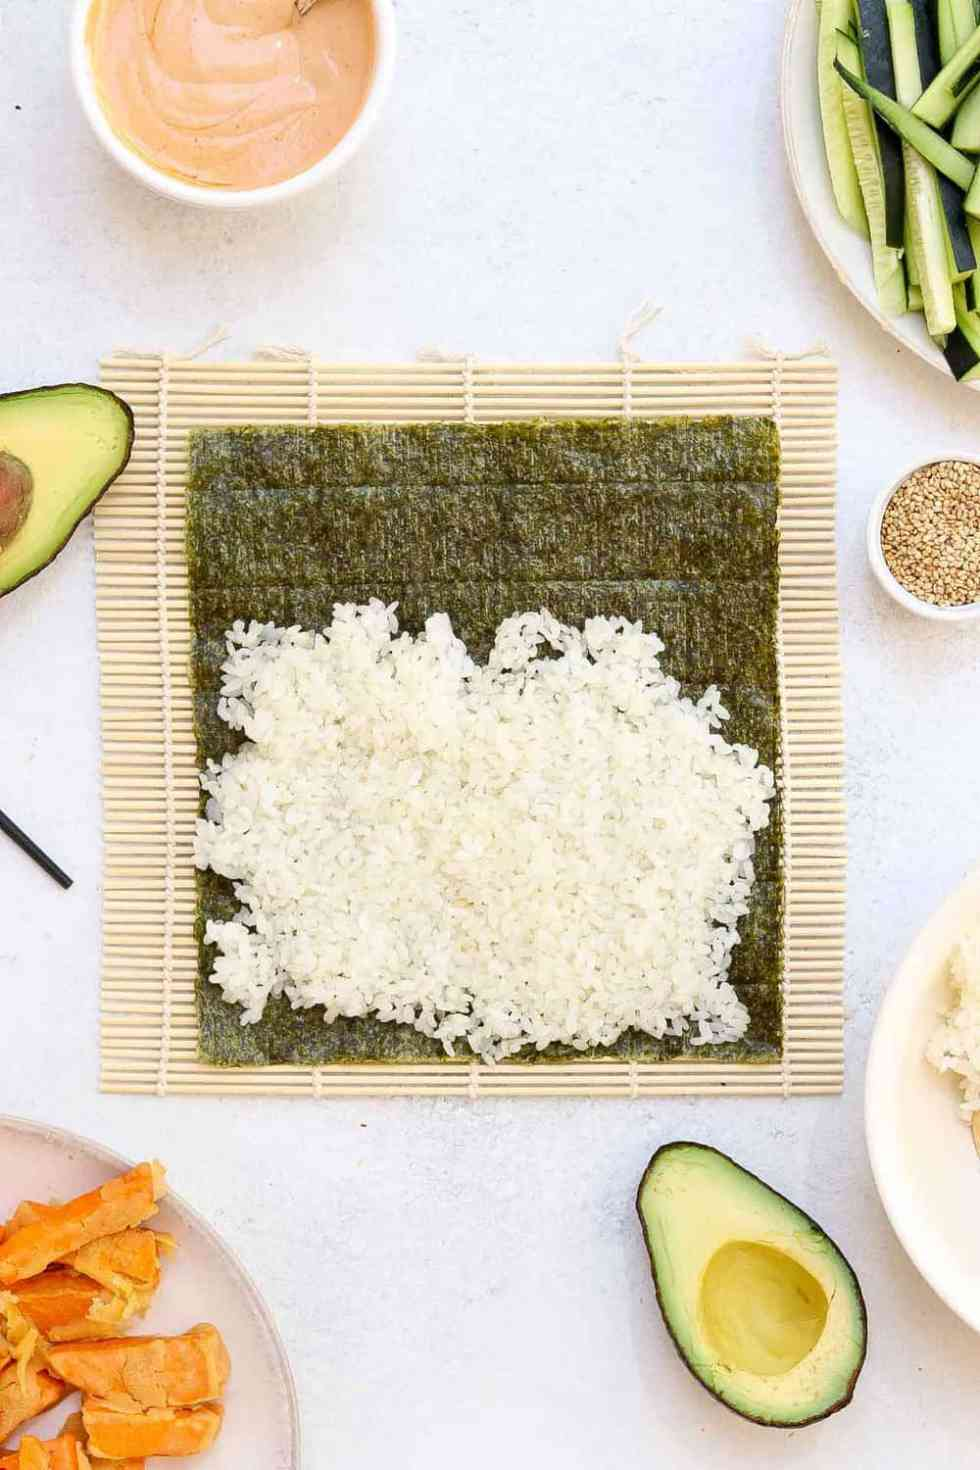 Sushi nori with white rice on top of a bamboo rolling mat.